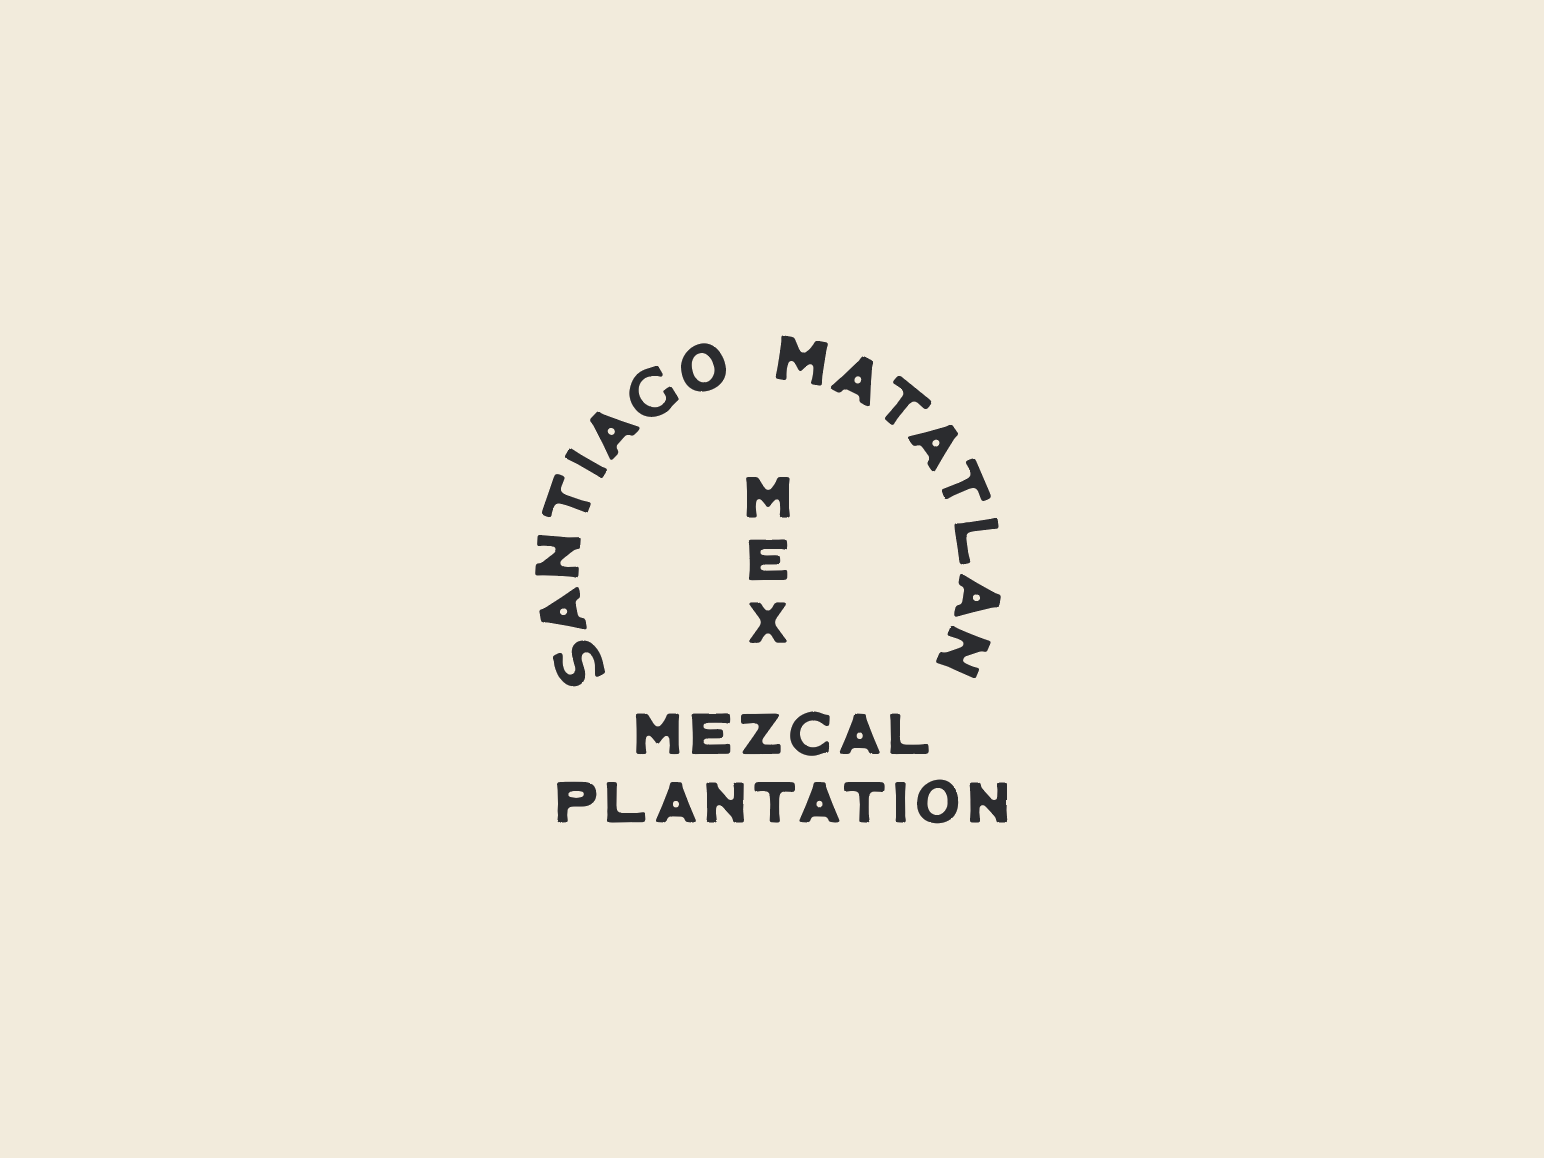 Mezcal Plantation Lockup mexican mexico old west west southwestern southwest minimal typography branding logo design illustration type design jamescoffman landboys land lockup typeface font type